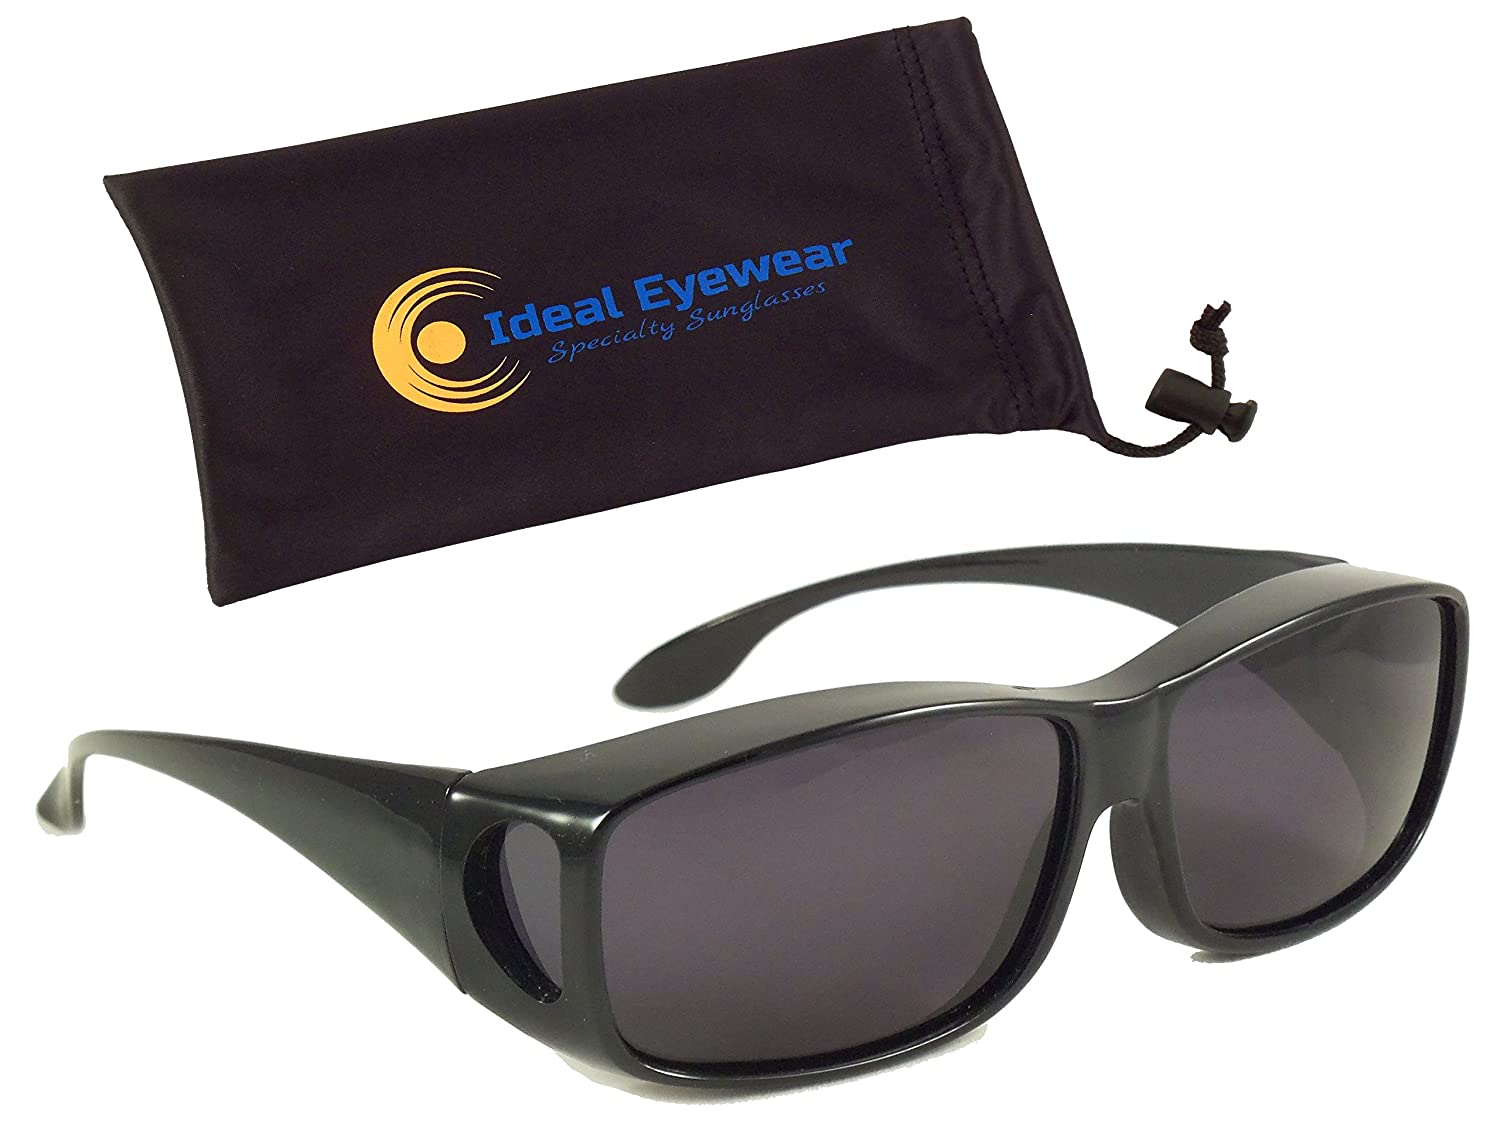 392dce5daa1b Amazon.com  Sun Shield Fit Over Sunglasses with Polarized Lenses - Wear  Over Prescription Glasses (Black Frame Smoke Lens with Case)  Shoes